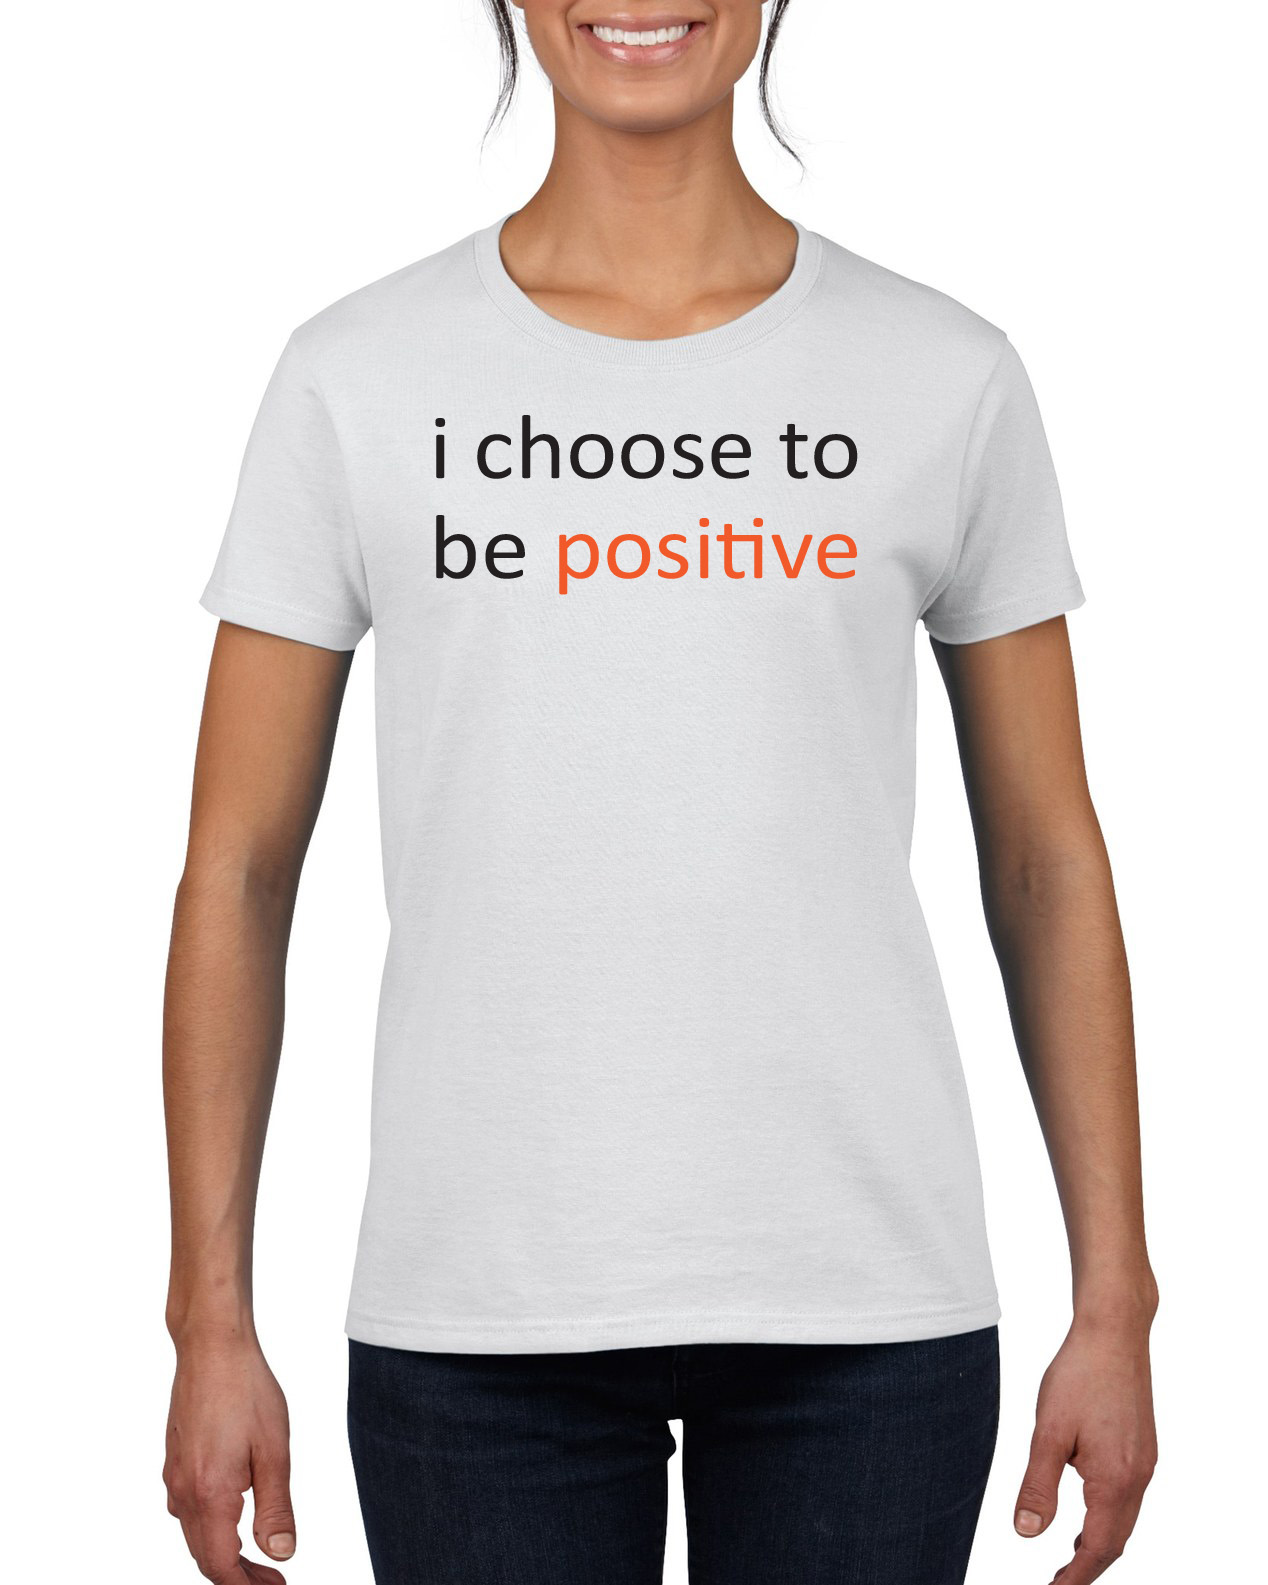 1c15a6d6 I Choose To Be Positive Crew Neck Tee 6 oz 100% cotton on Storenvy